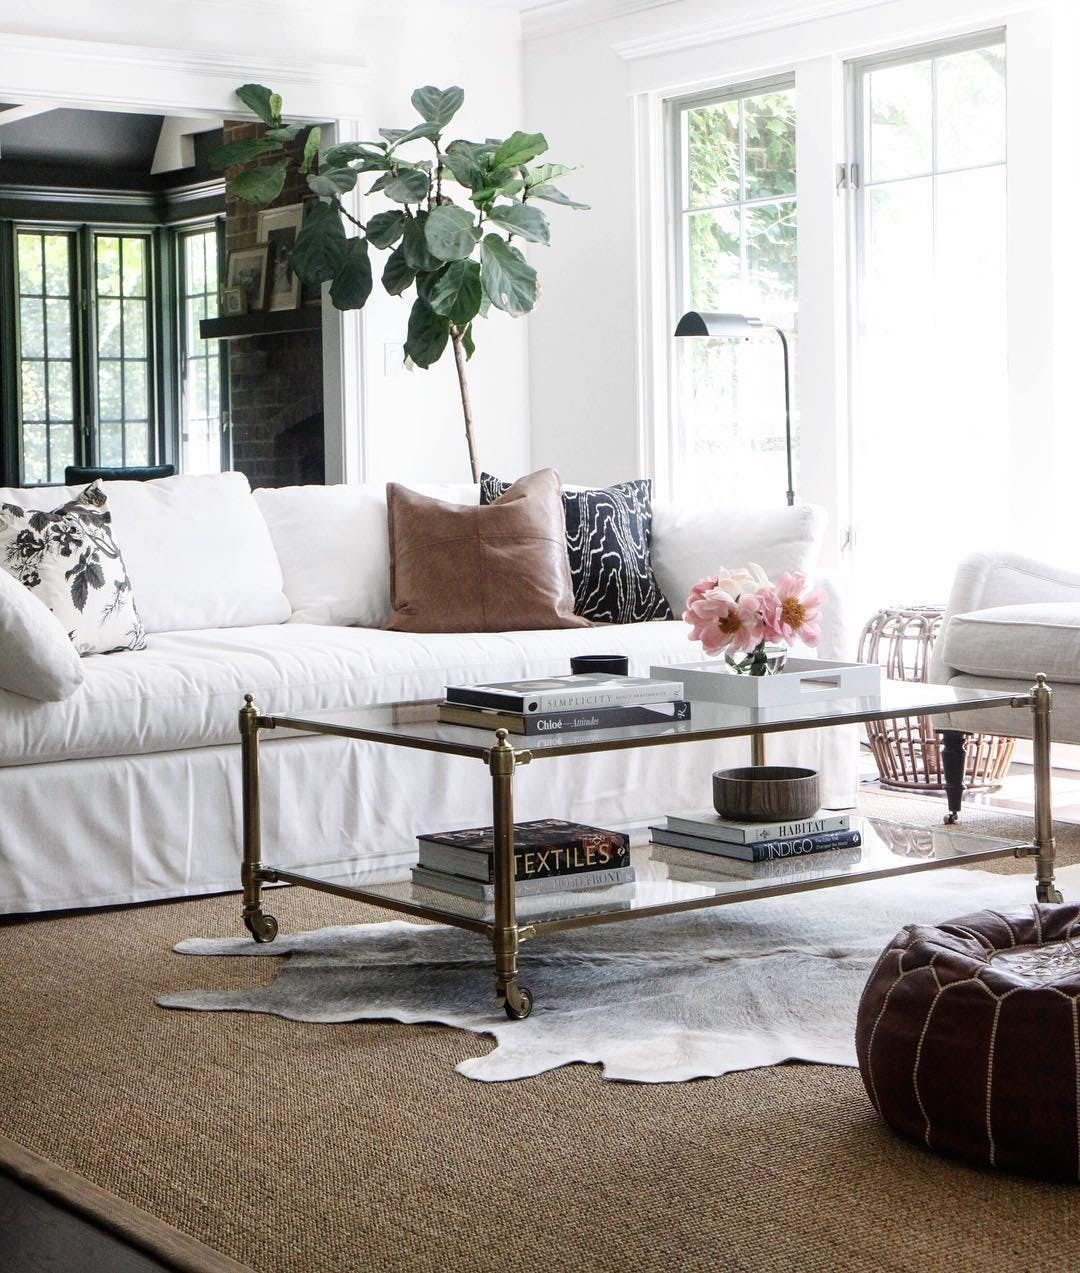 6 Home Upgrades That Look Luxe (but Cost A Little). Living Room ...